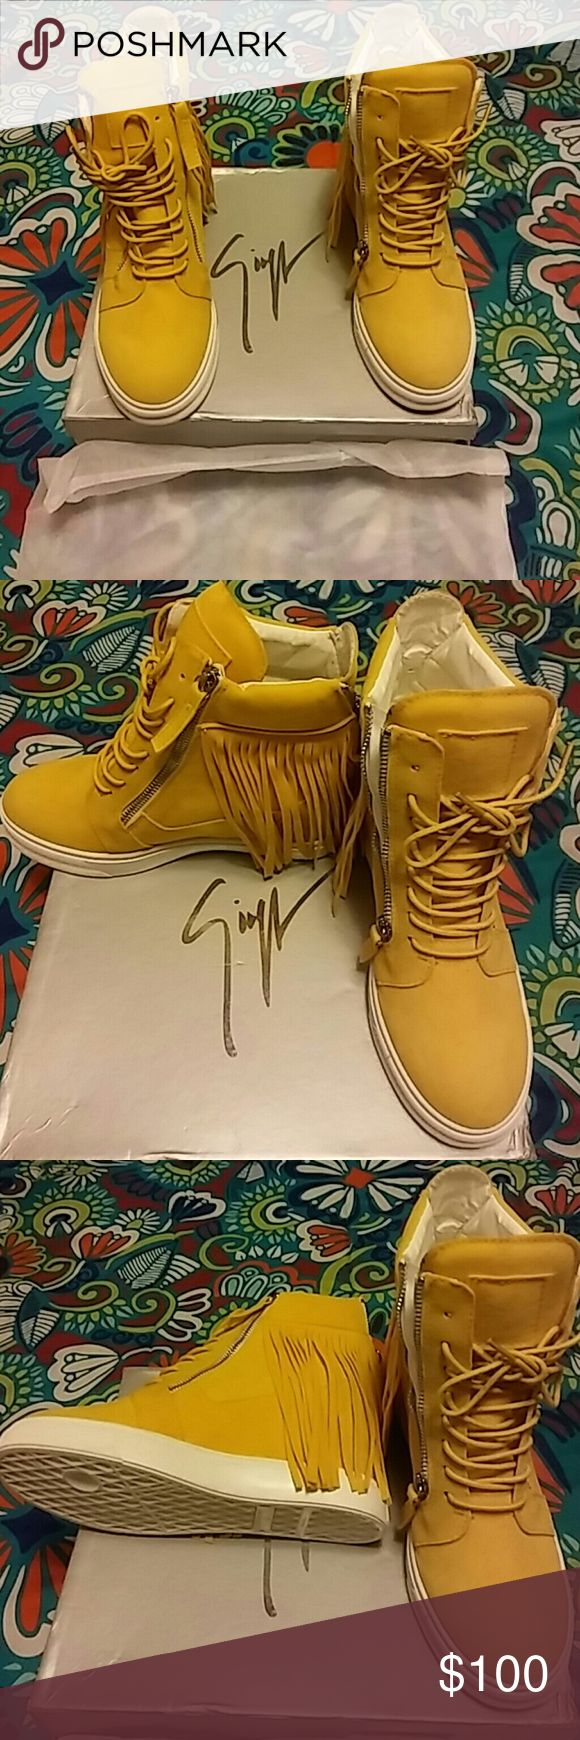 Yellow fringe sneakers Brand new yellow inspired Giuseppe sneakers beautiful and very comfortable. On the left foot the sneaker has a very faint blue stain from trying on with jeans but not noticeable at all. But i will adjust the price because of that very minor flaw. Im open to offers but plz dont low ball me, or i will not negotiate. Thanks for shopping with me happy poshing.???????????????????? Shoes Wedges